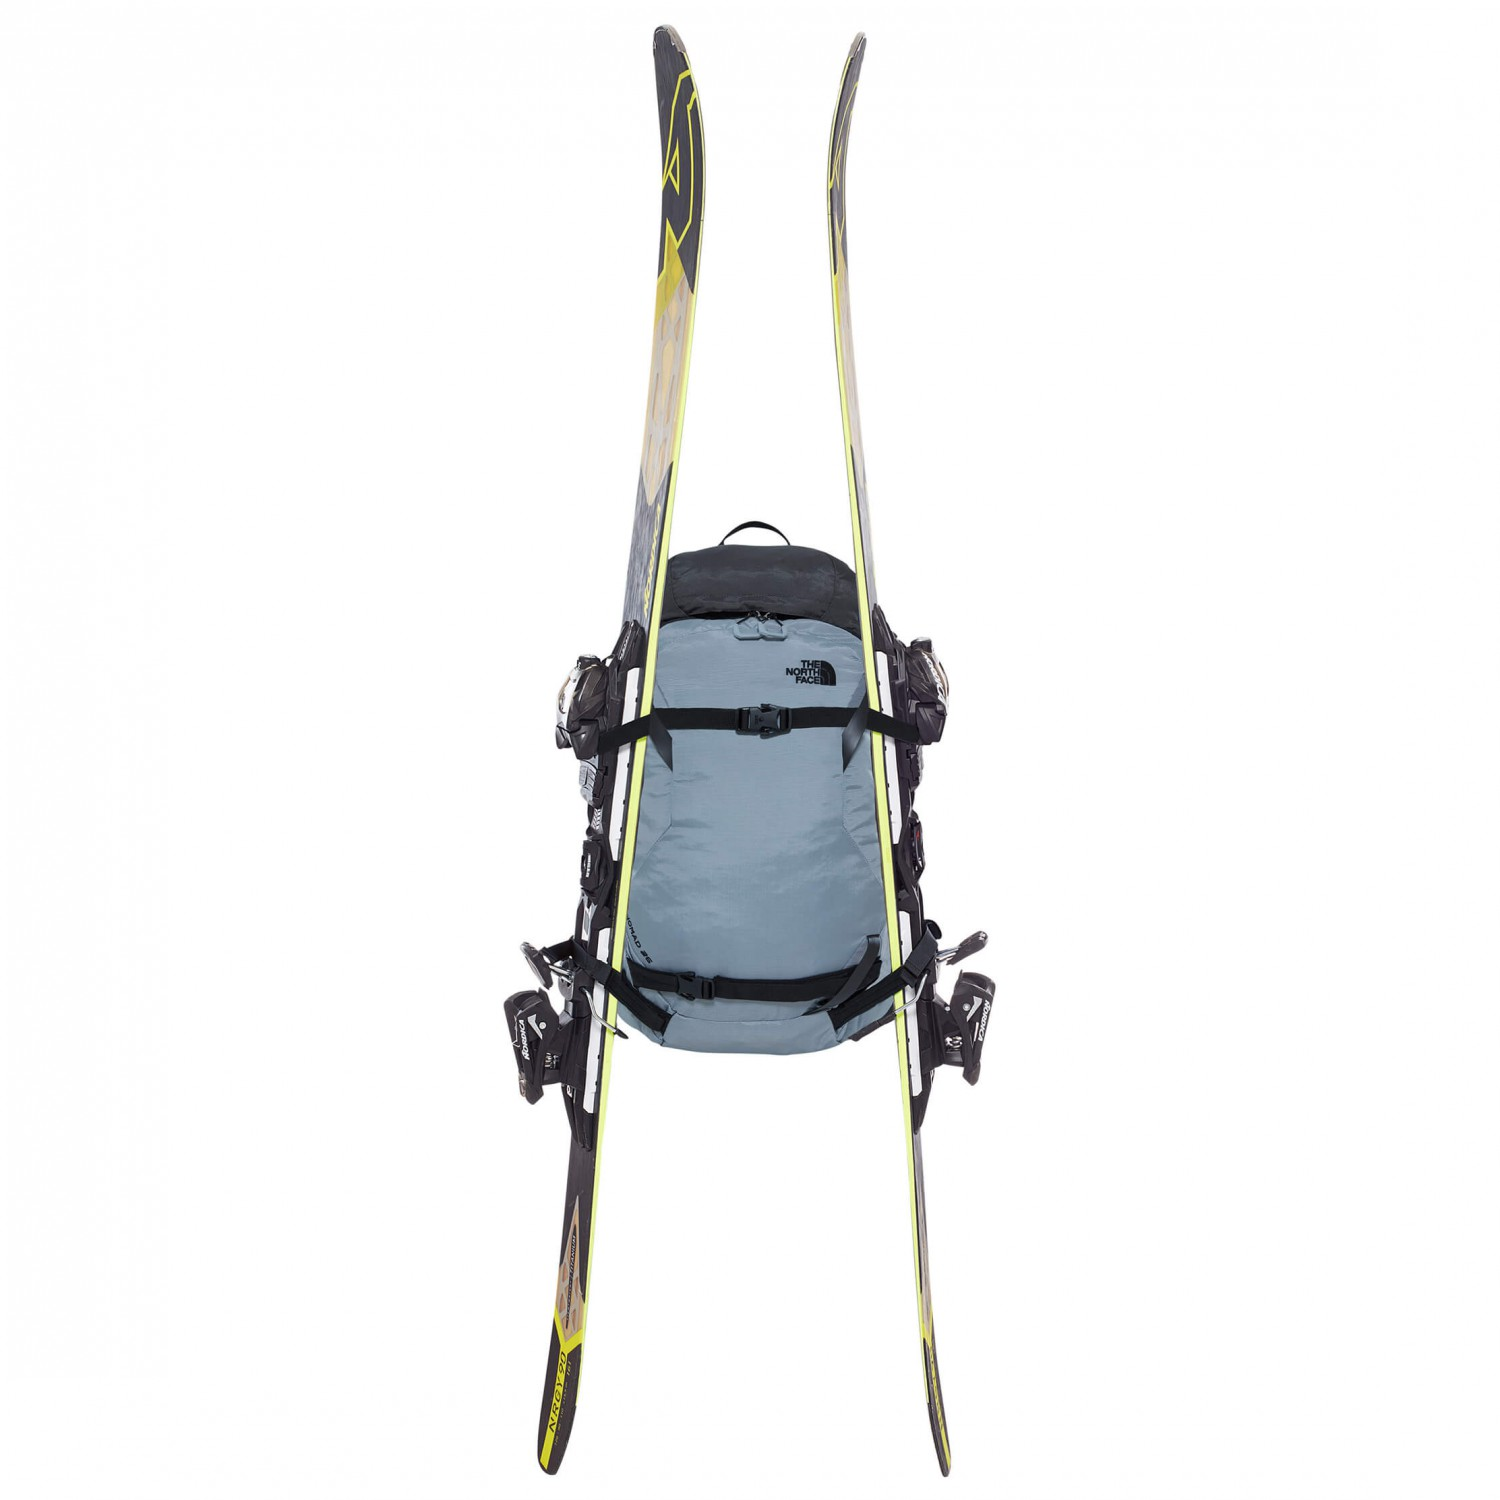 60% Freigabe mehr Fotos Original kaufen The North Face Snomad 26 - Ski Touring Backpack | Buy online ...